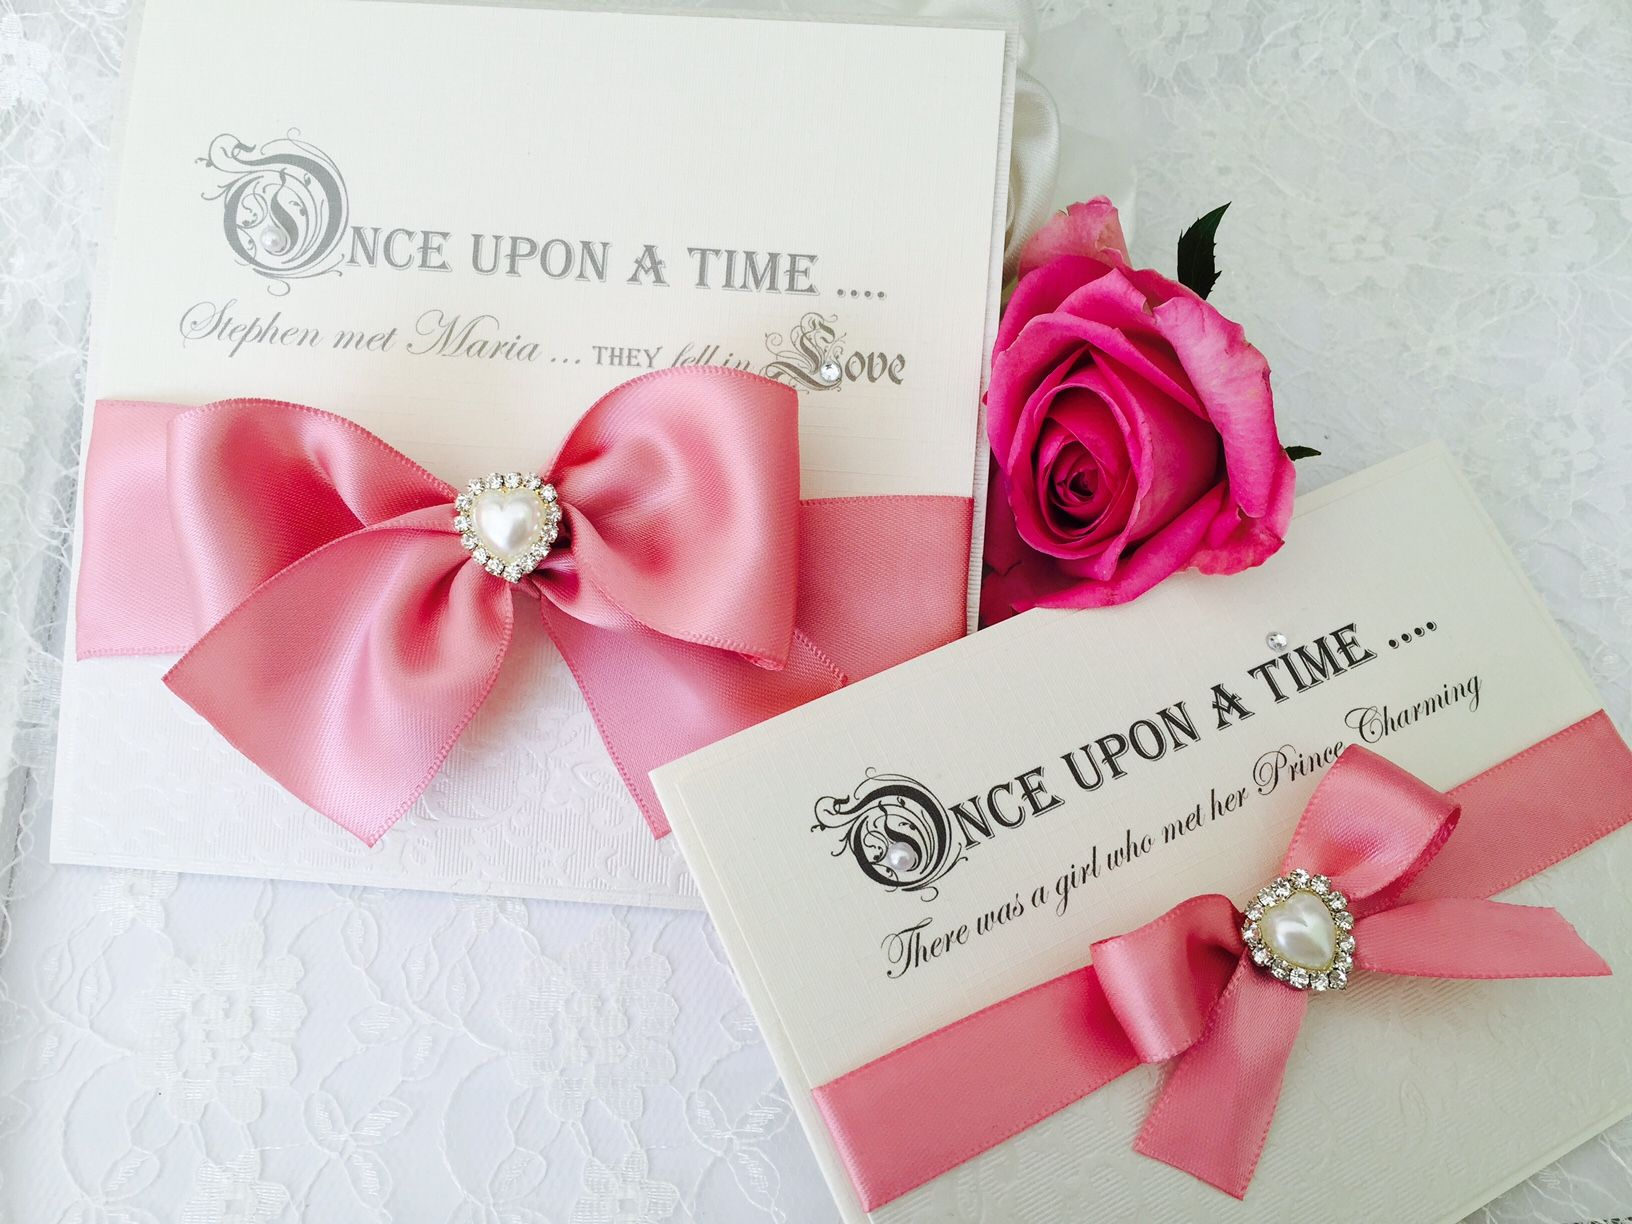 Fairytale wedding invitations